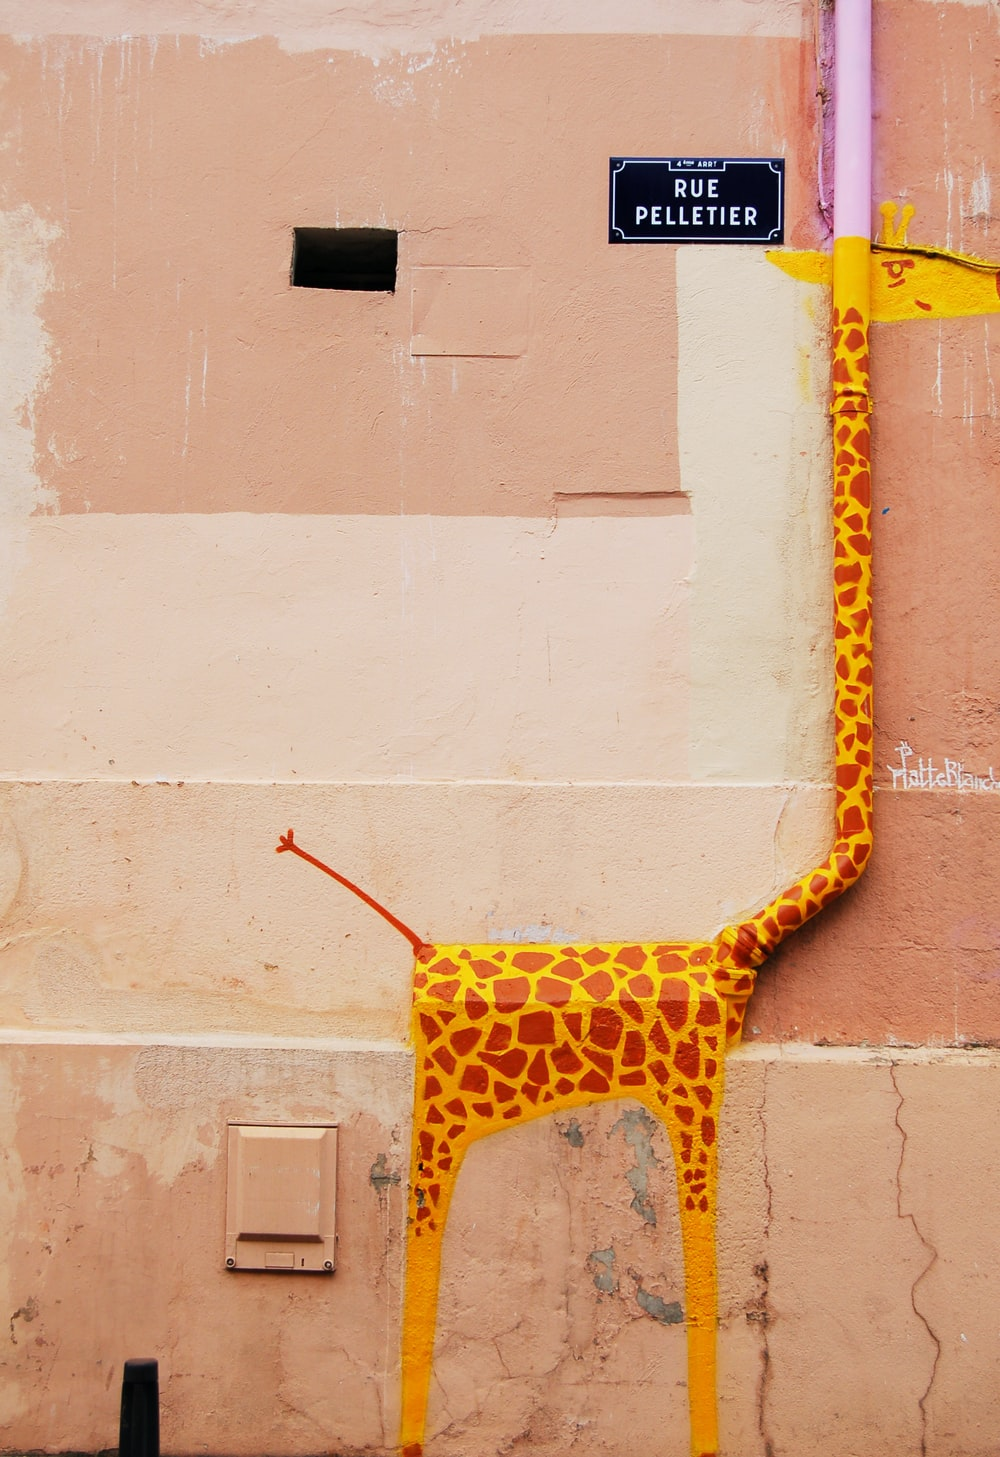 Giraffe Graffiti Artwork Painted On Drainpipe With Street Sign Wall Art In A Public